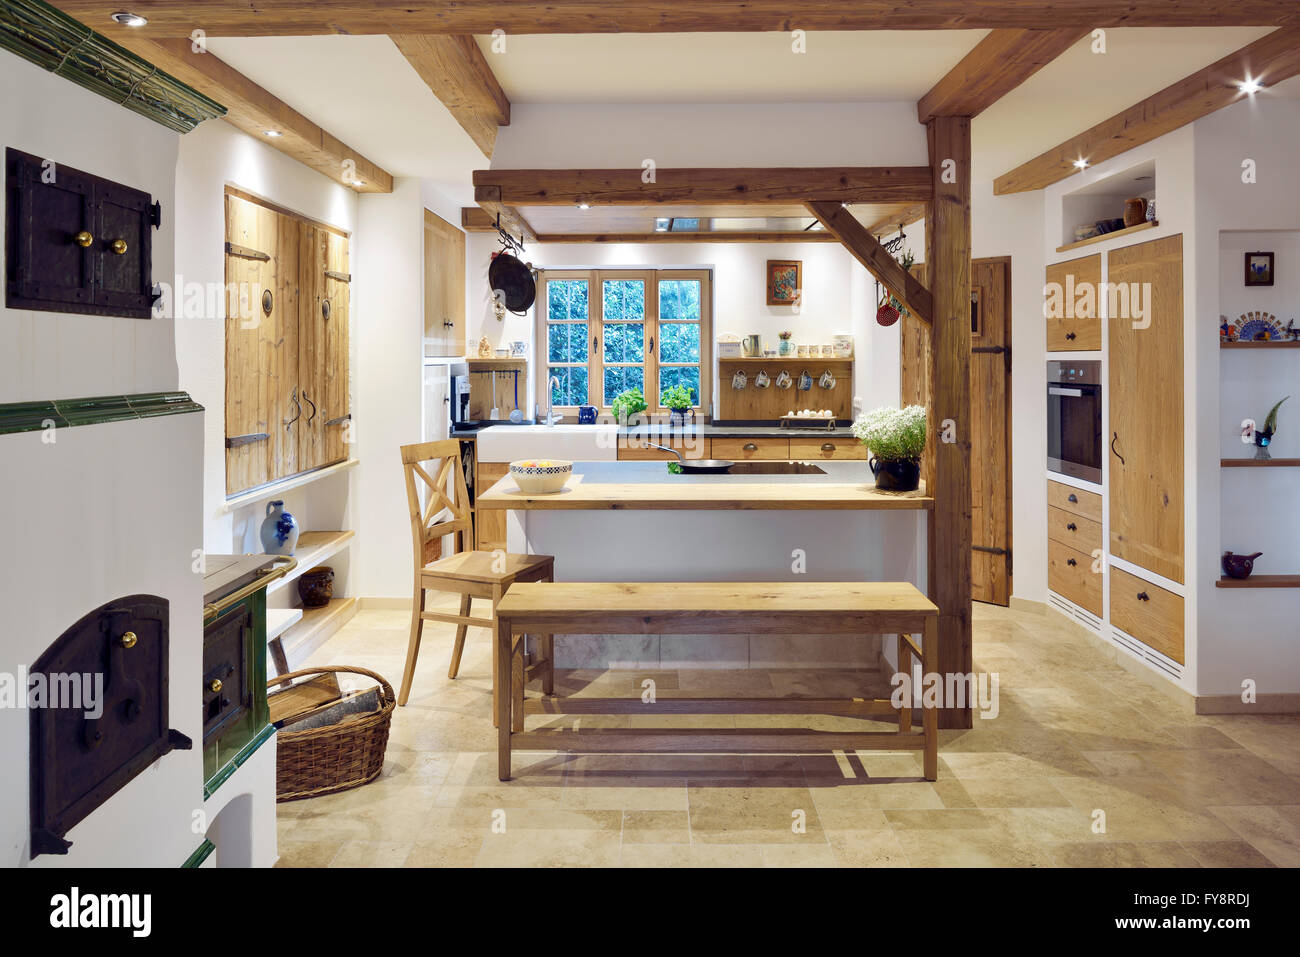 Rustic Country Style Home With Kitchen Island Stock Photo